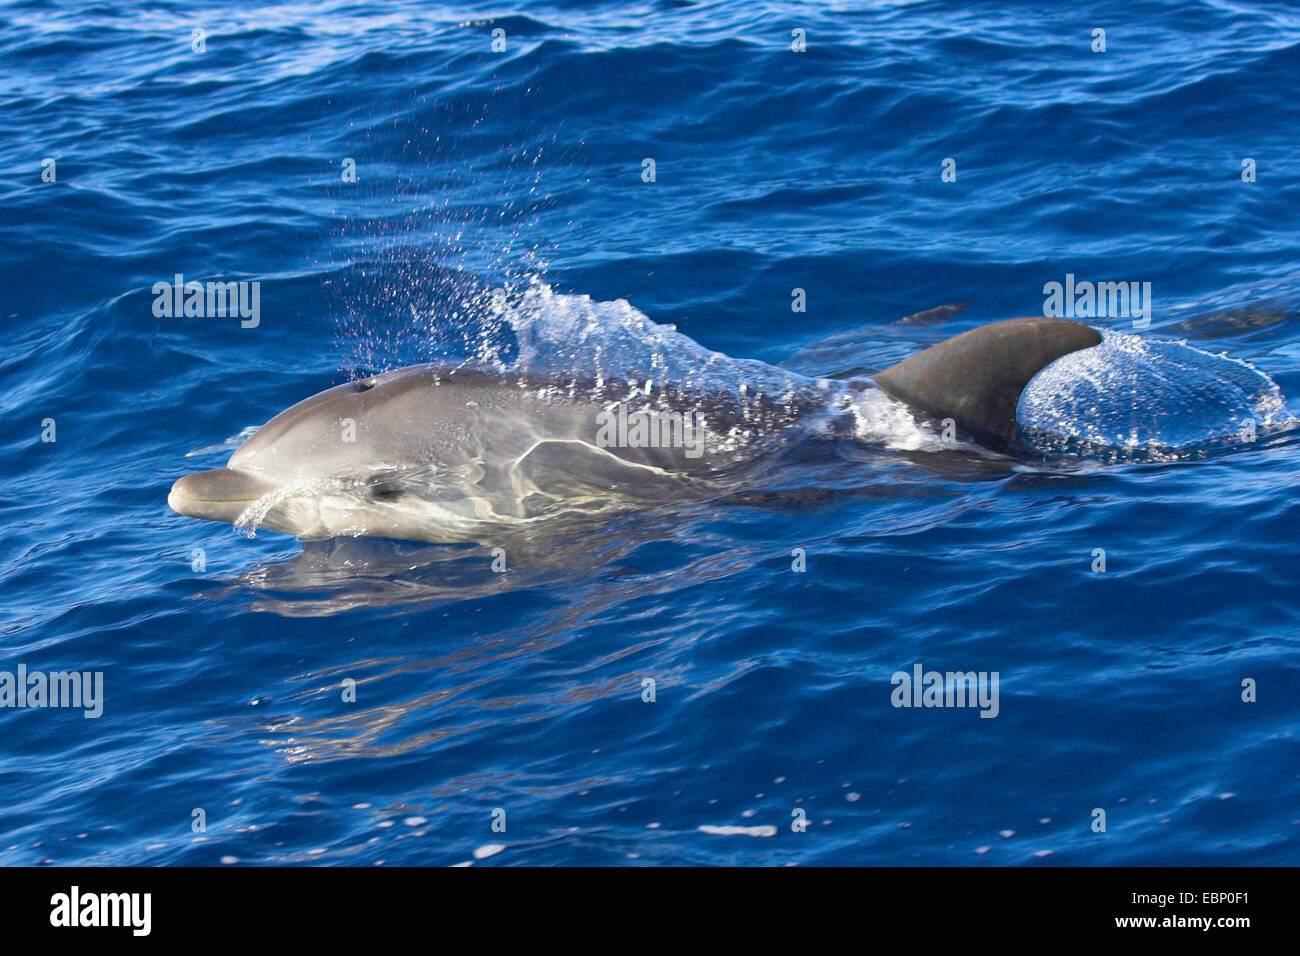 Bottlenosed dolphin, Common bottle-nosed dolphin (Tursiops truncatus), Spyhopping, Canary Islands, La Gomera - Stock Image